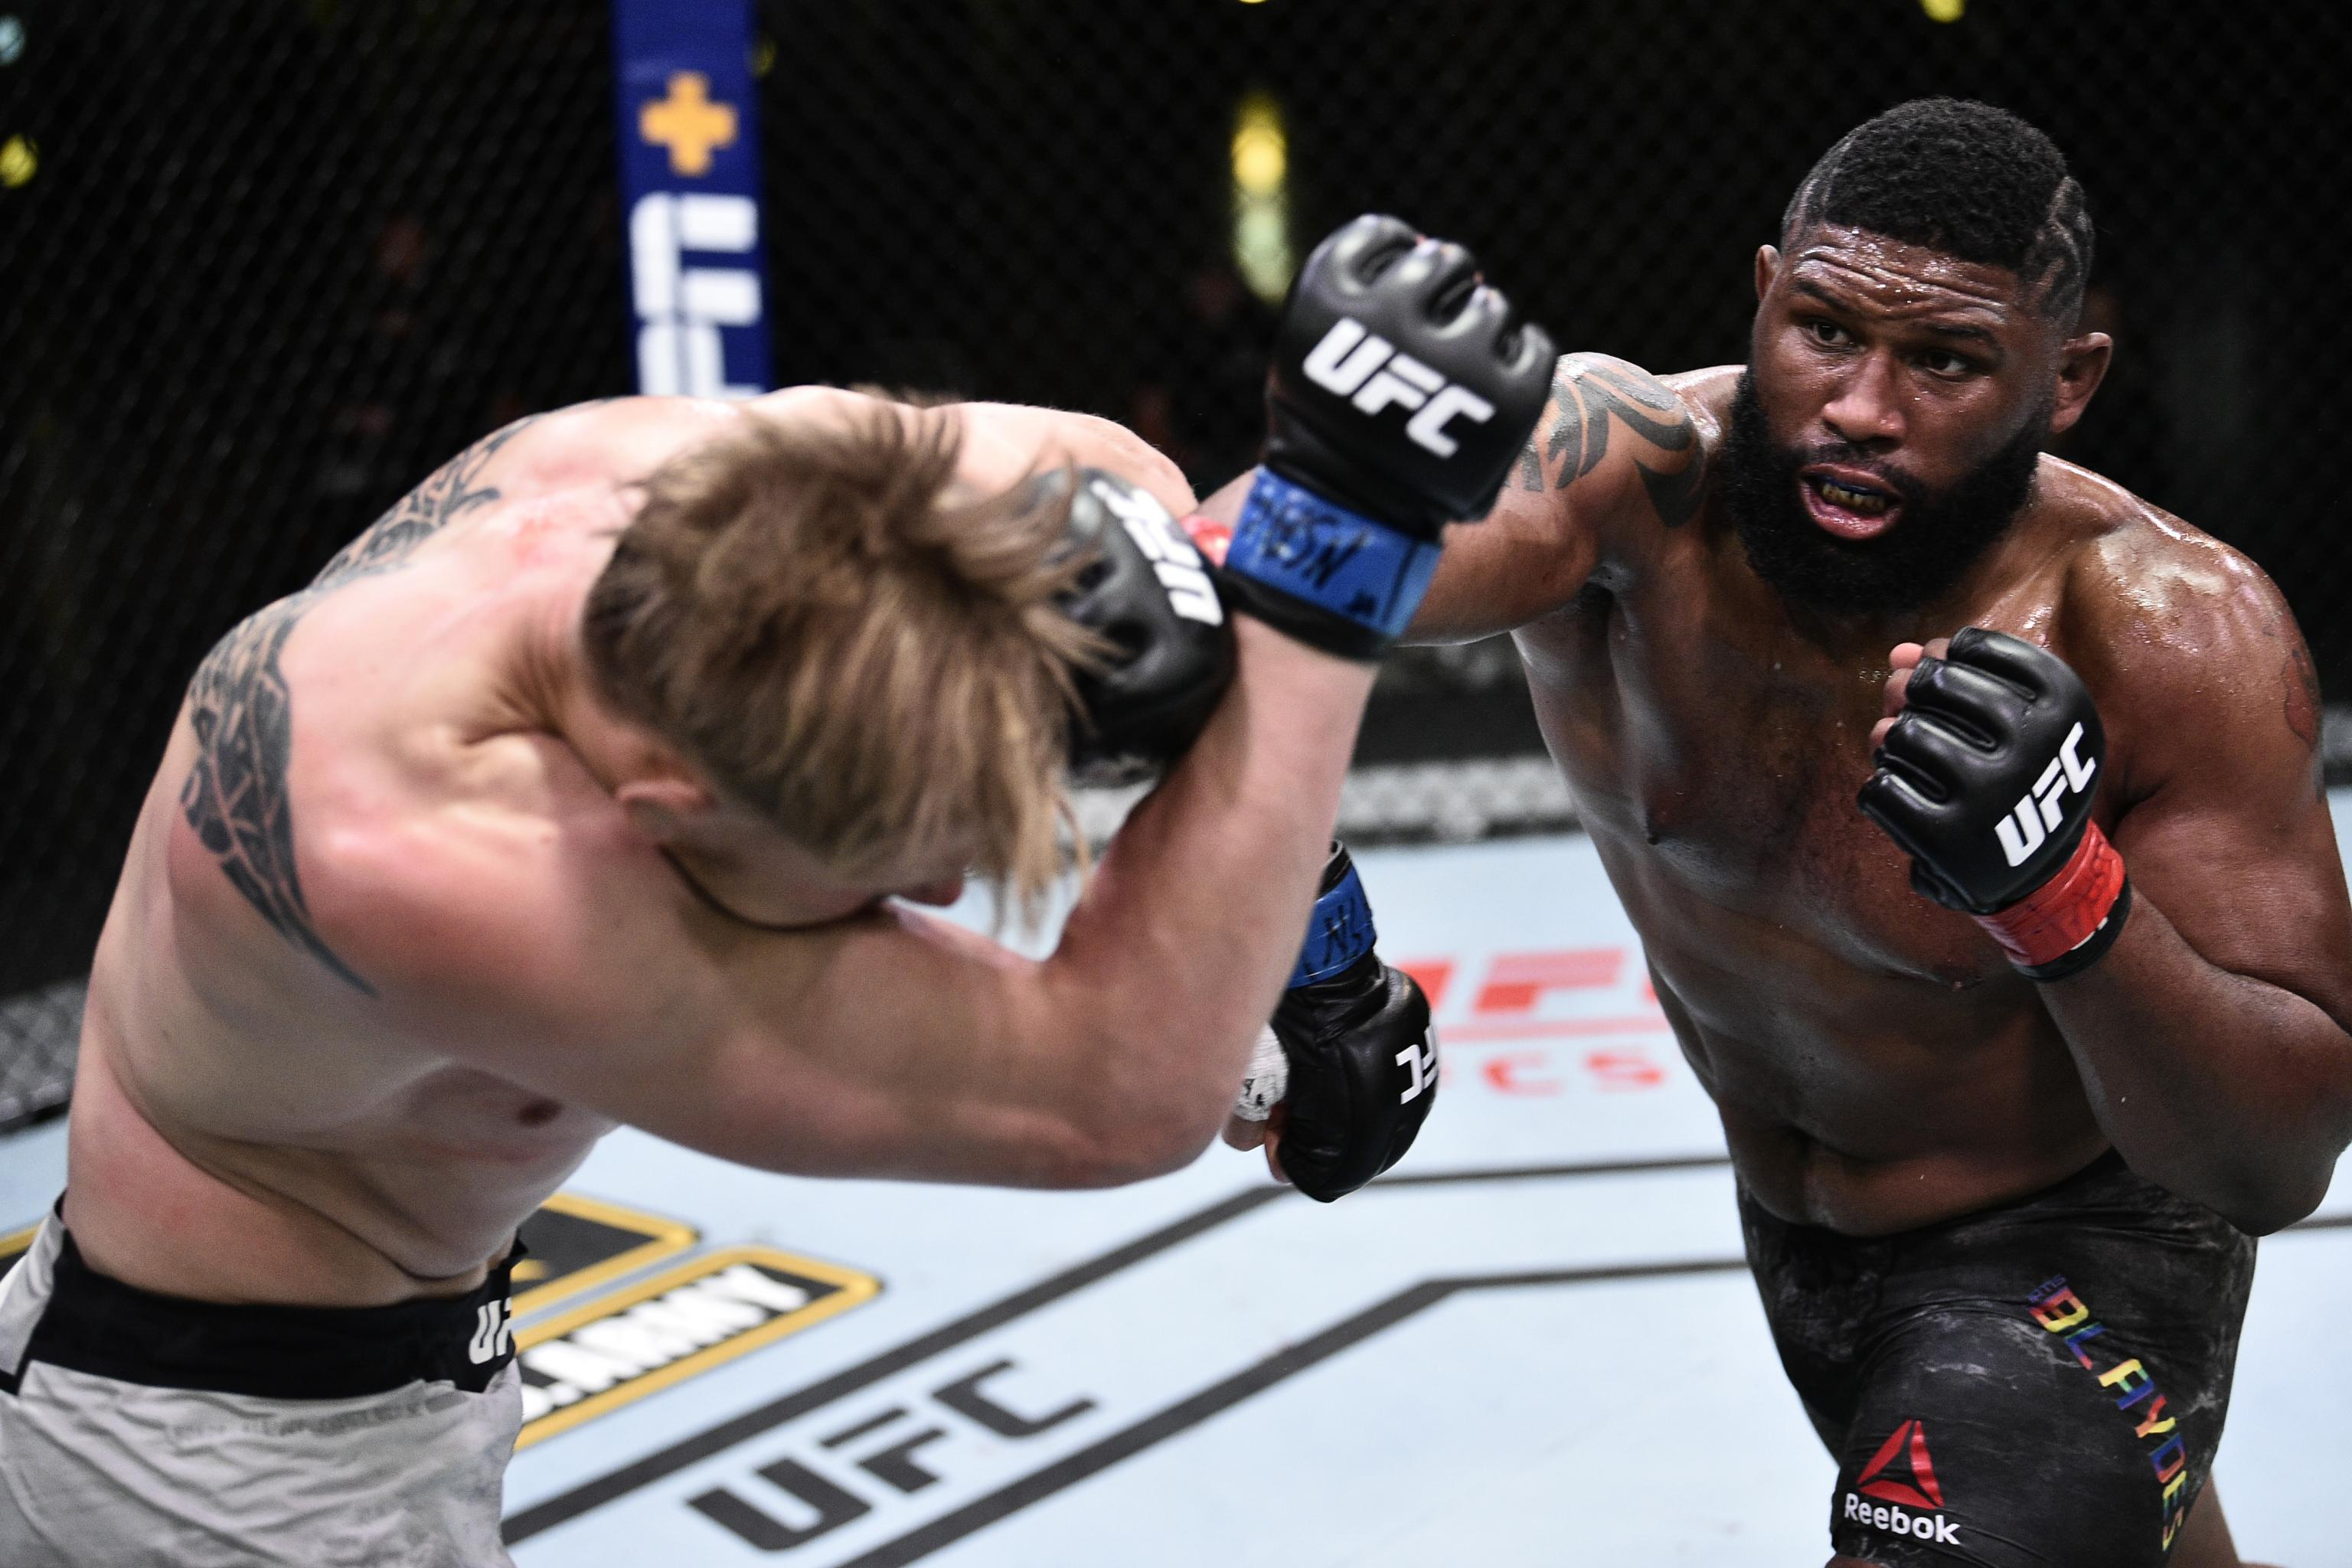 Ufc On Espn 11 Results Curtis Blaydes Beats Alexander Volkov Via Decision Bleacher Report Latest News Videos And Highlights